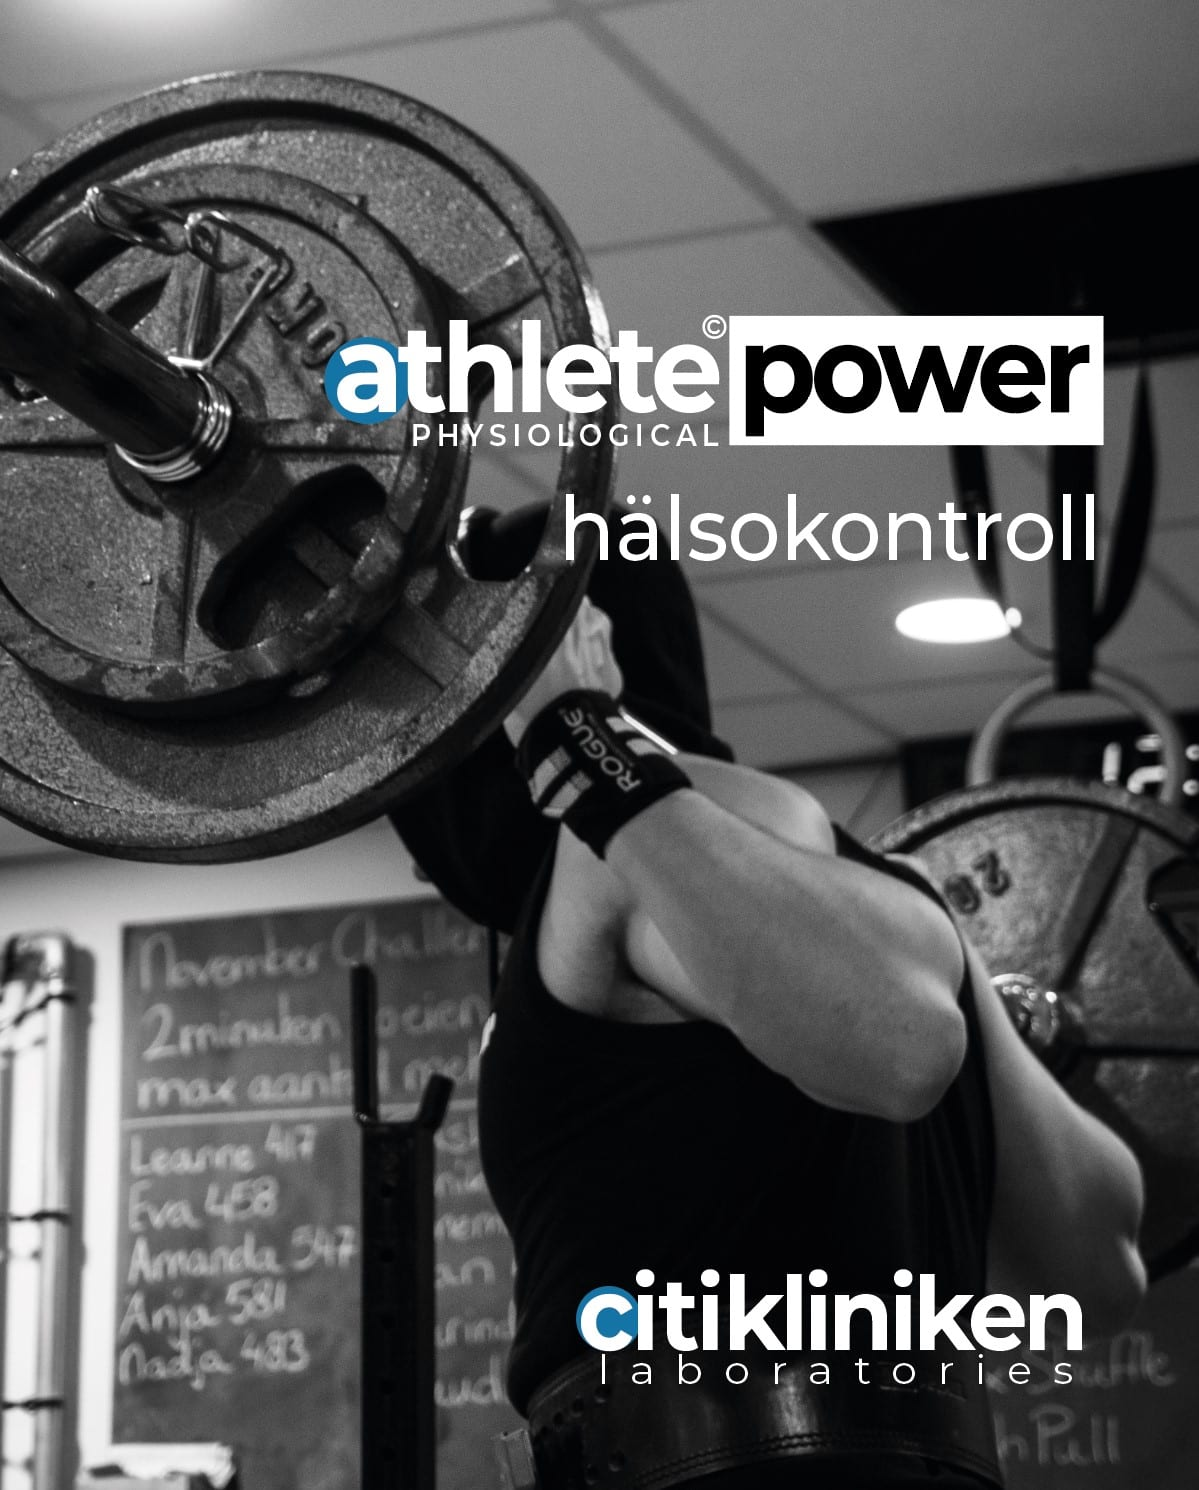 Athlete Physio Hälsokontroll via blodprov